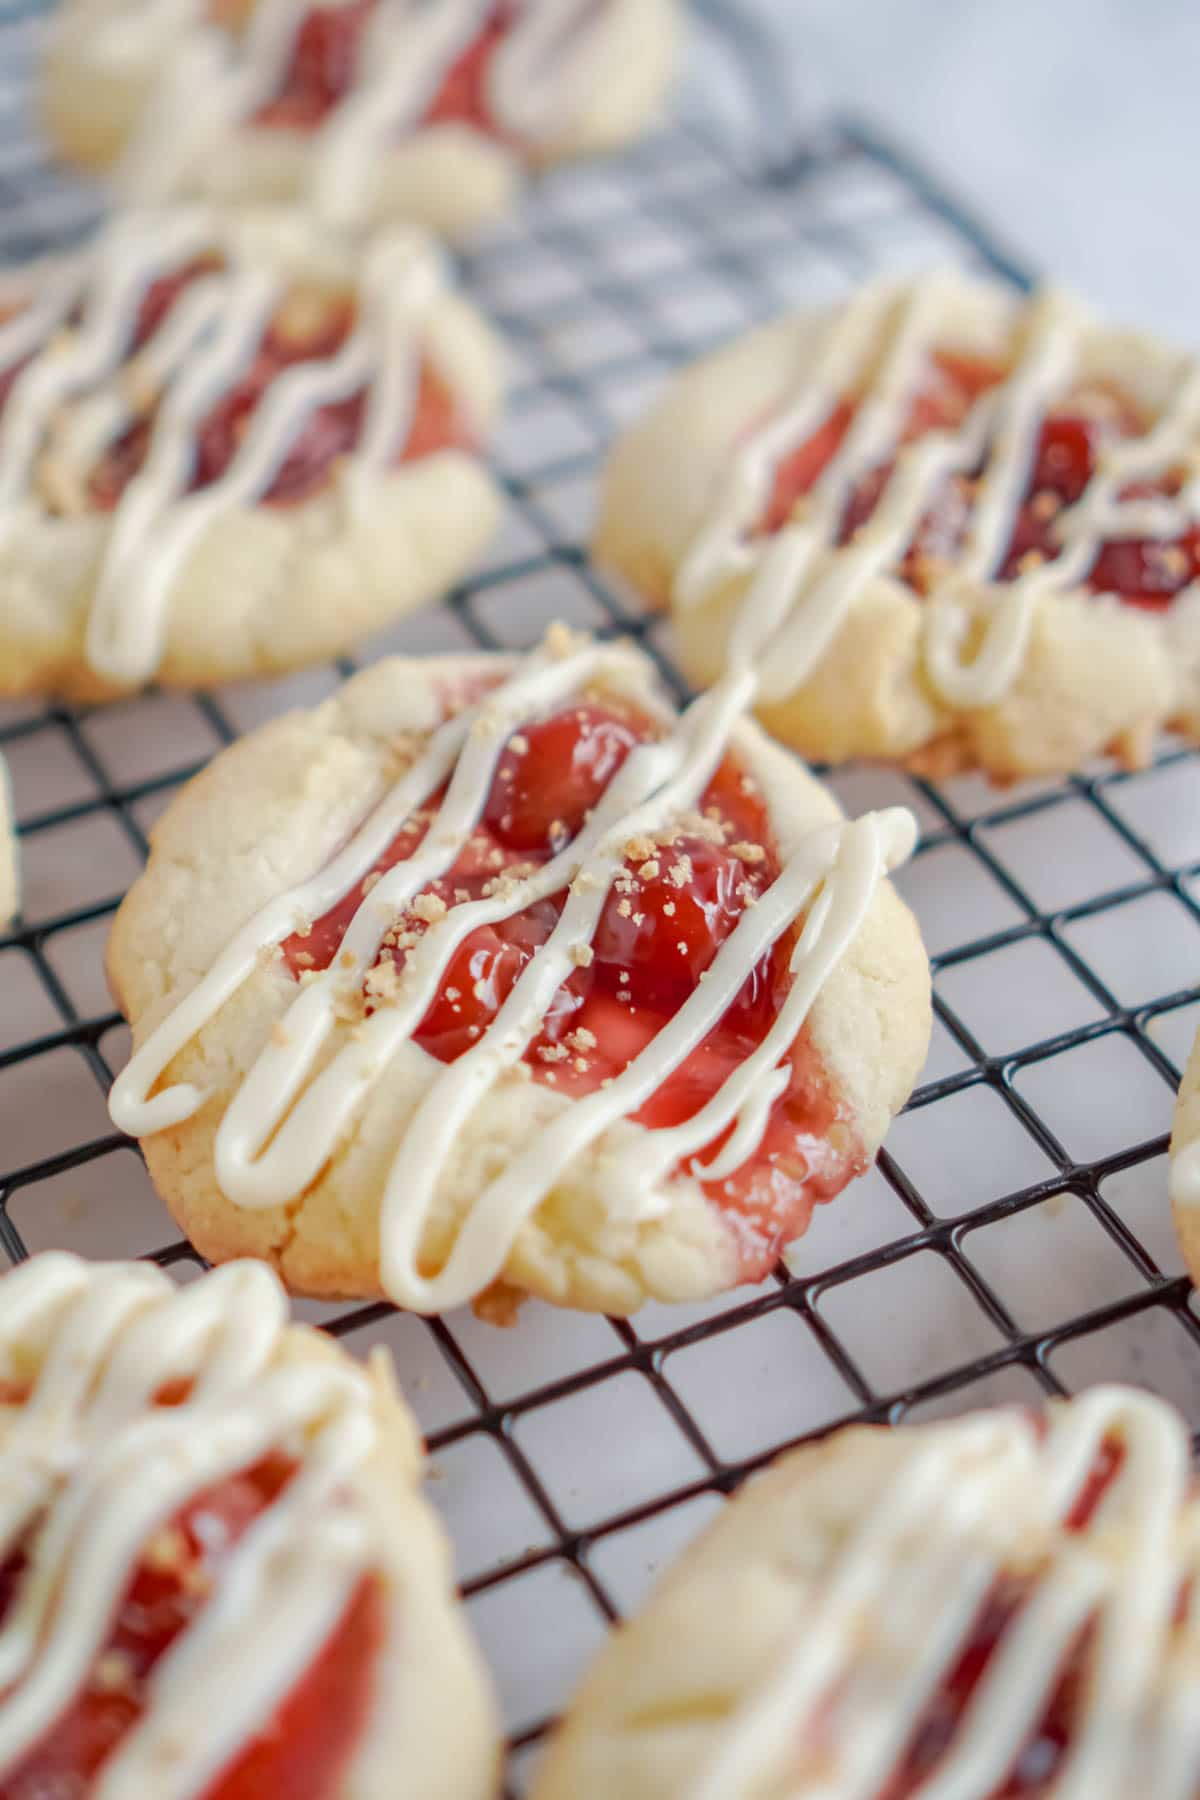 Cherry cheesecake cookies with cream cheese drizzled on top